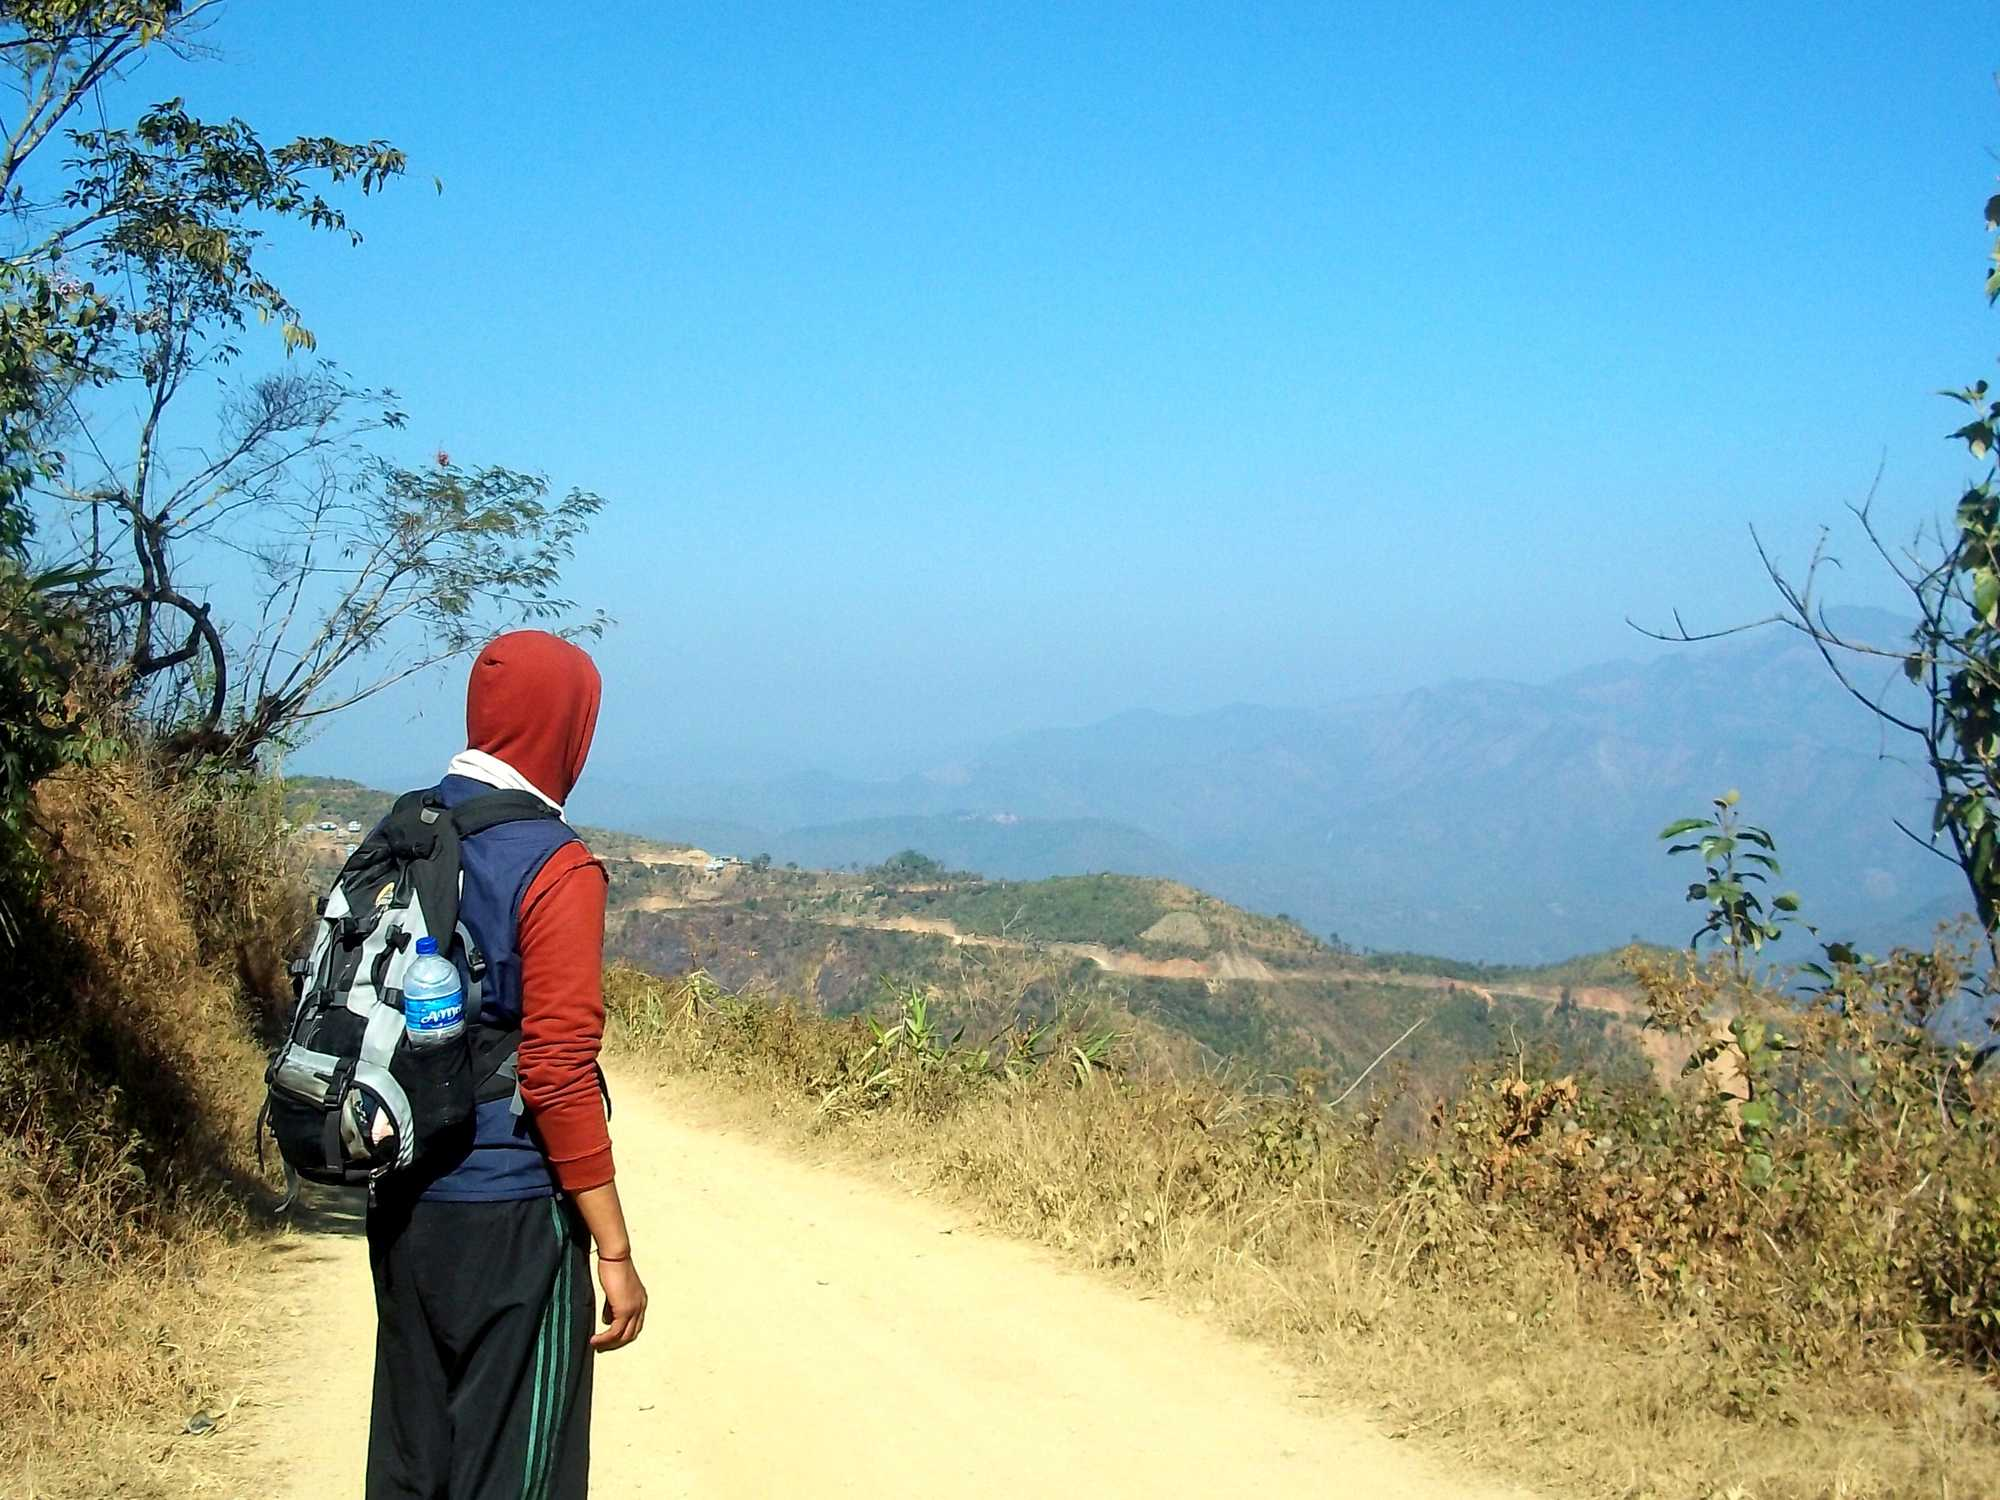 How to dress when hiking in Mizoram, northeast India?